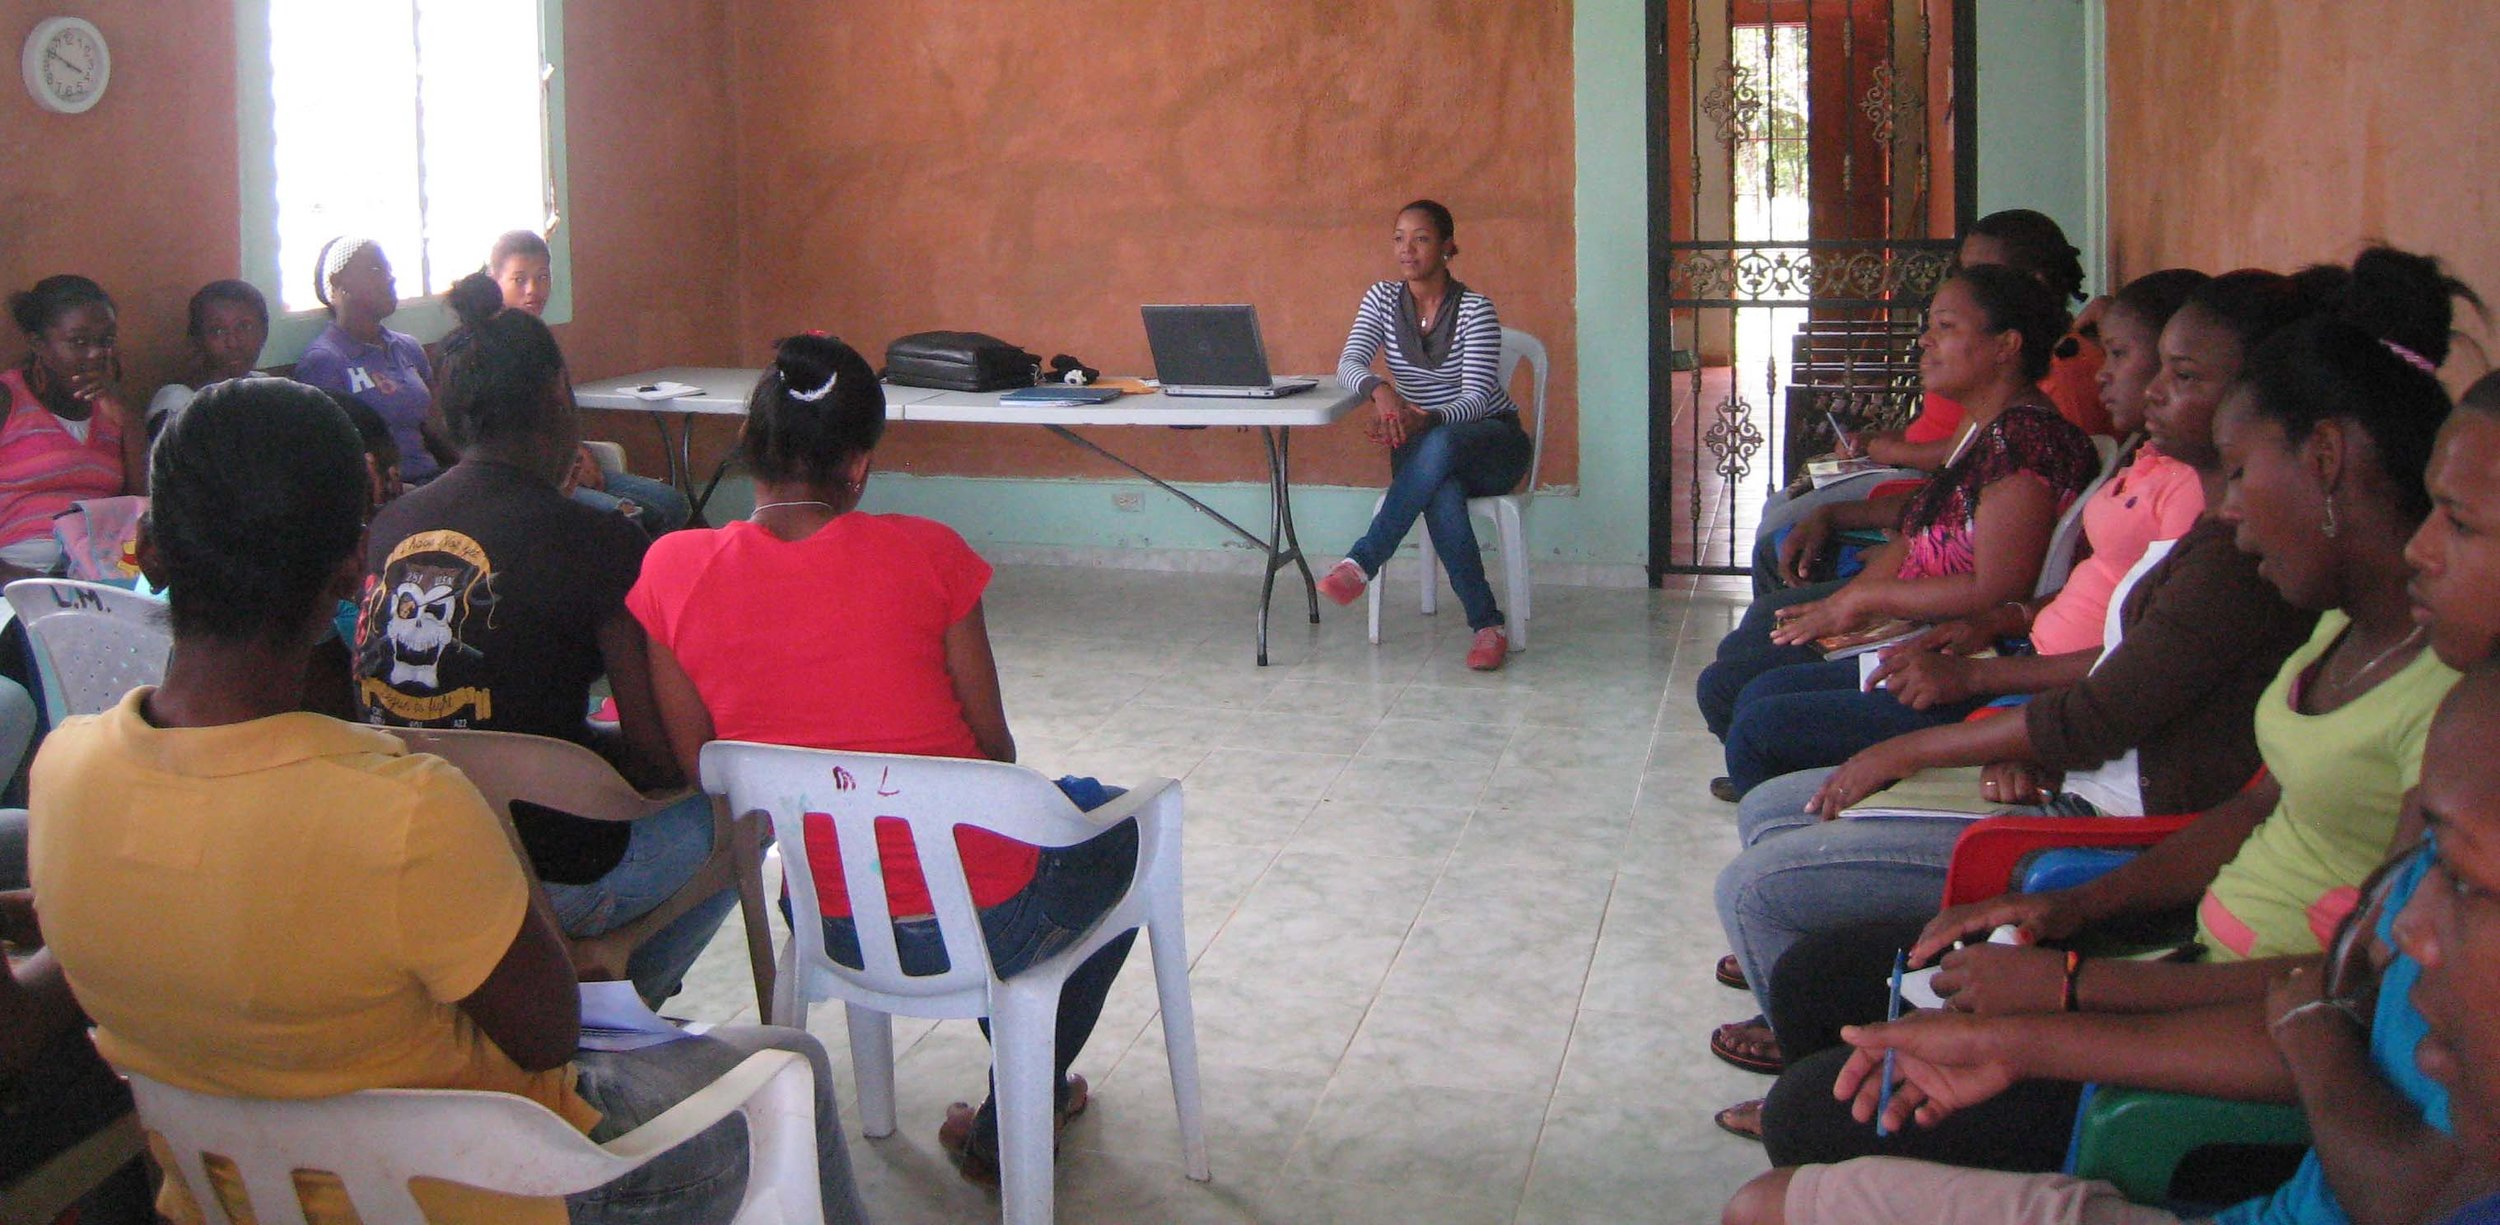 Vocational meeting with INFOTEP organizational representative for young adults, Learning Center, Cruz Verde